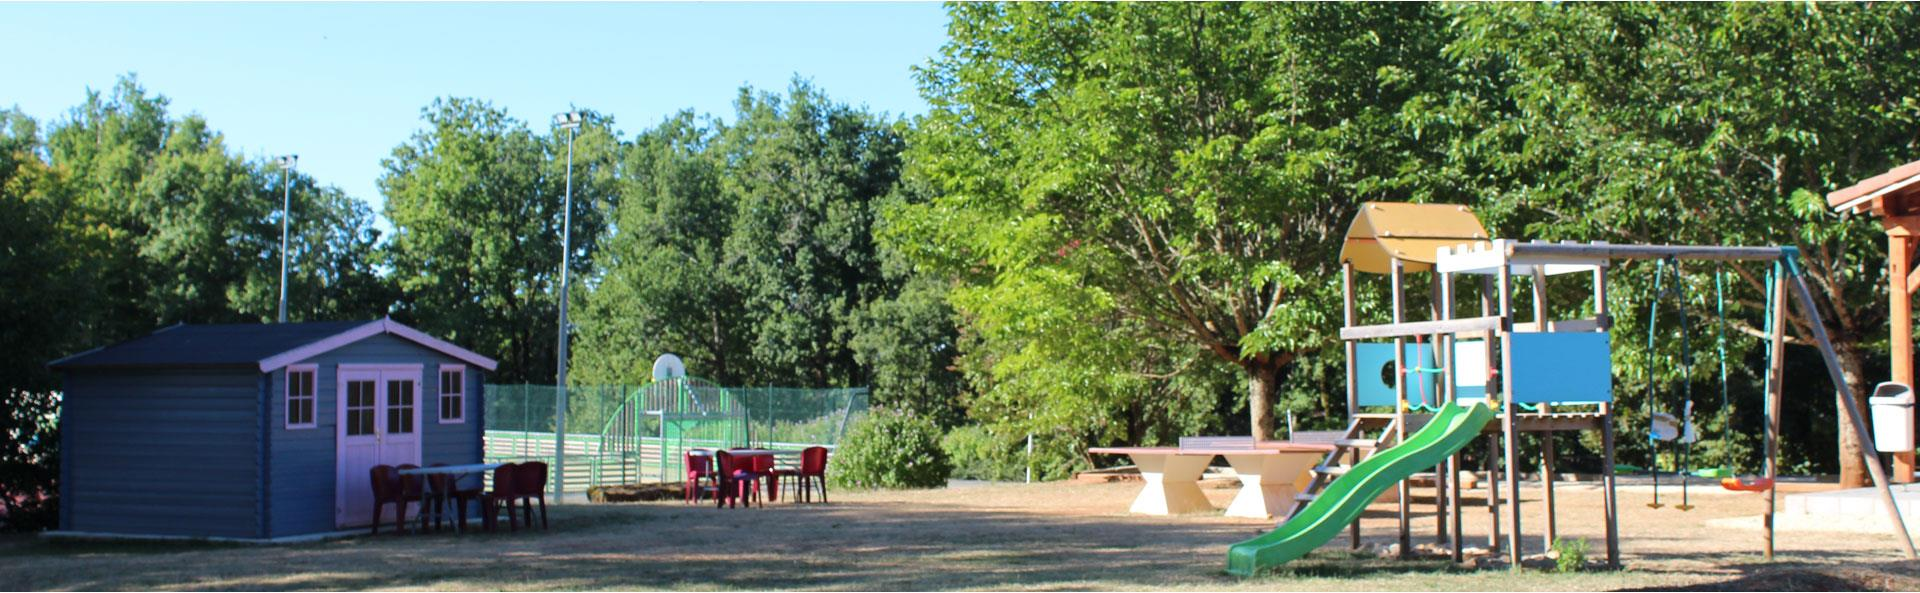 Périgord campsite – Lot Evasion: campsite in the Lot